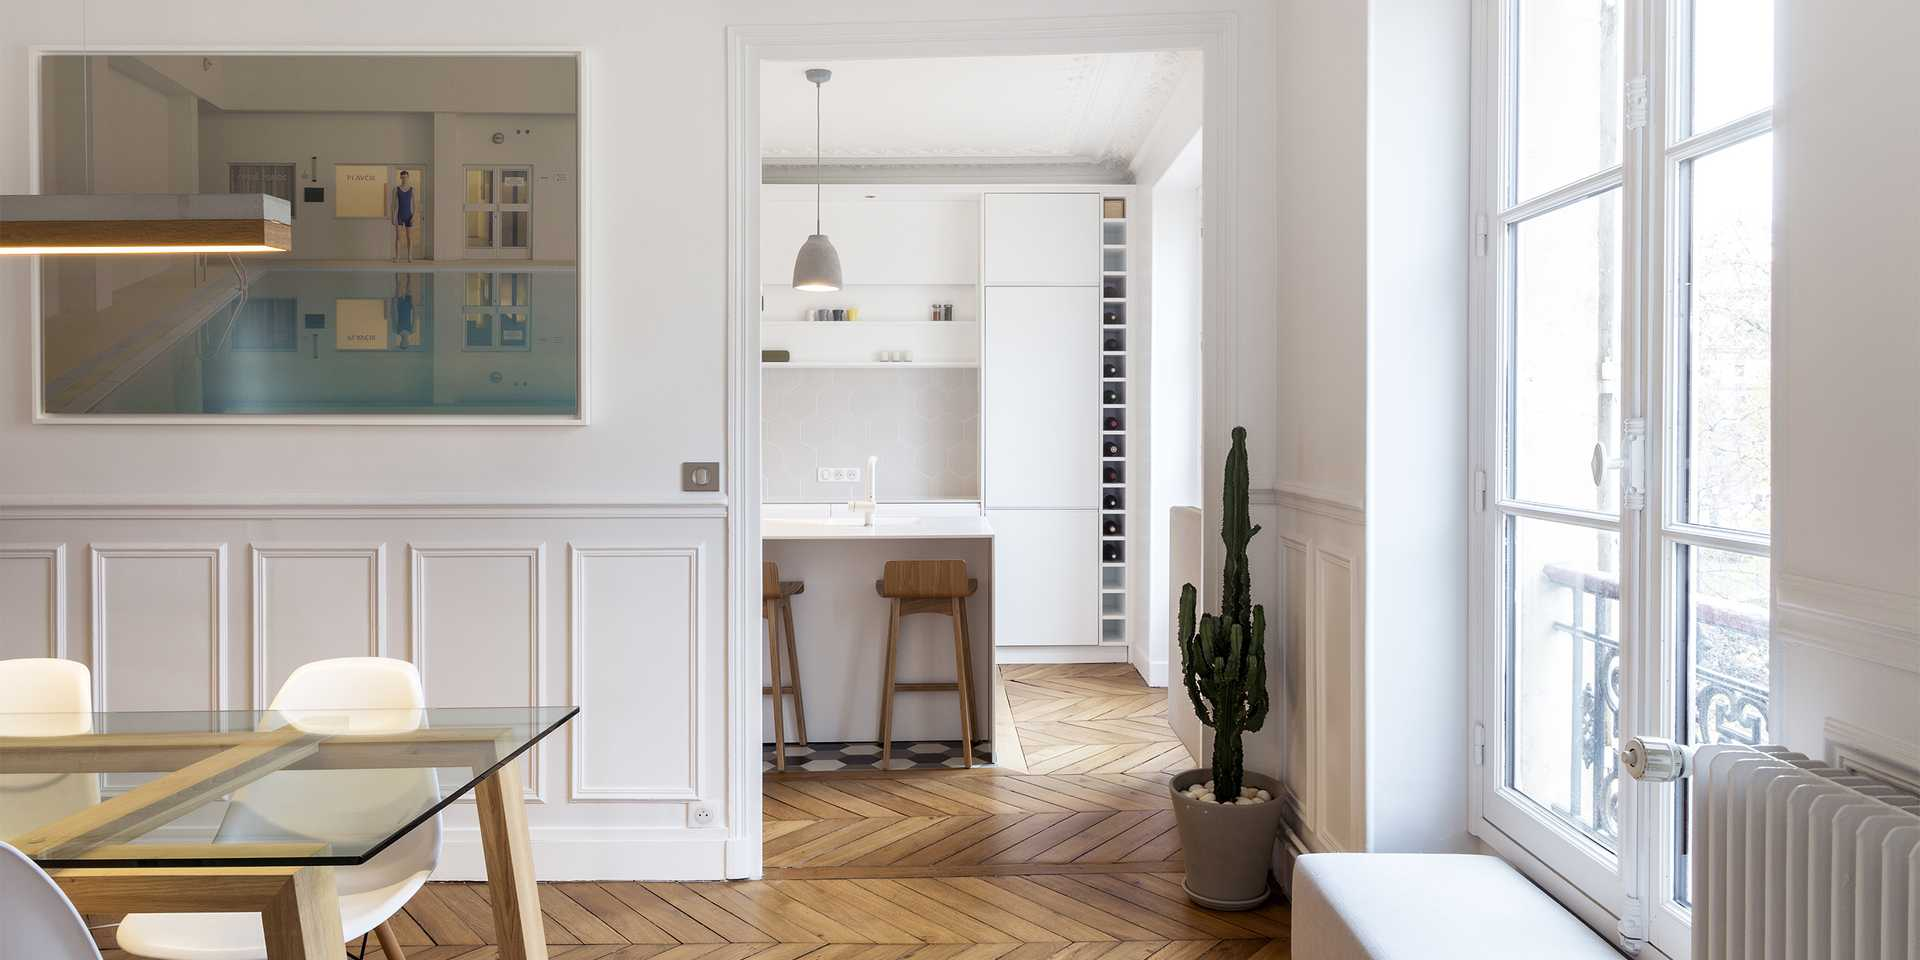 Haussmannian apartment redesigned by an architect in Bordeaux